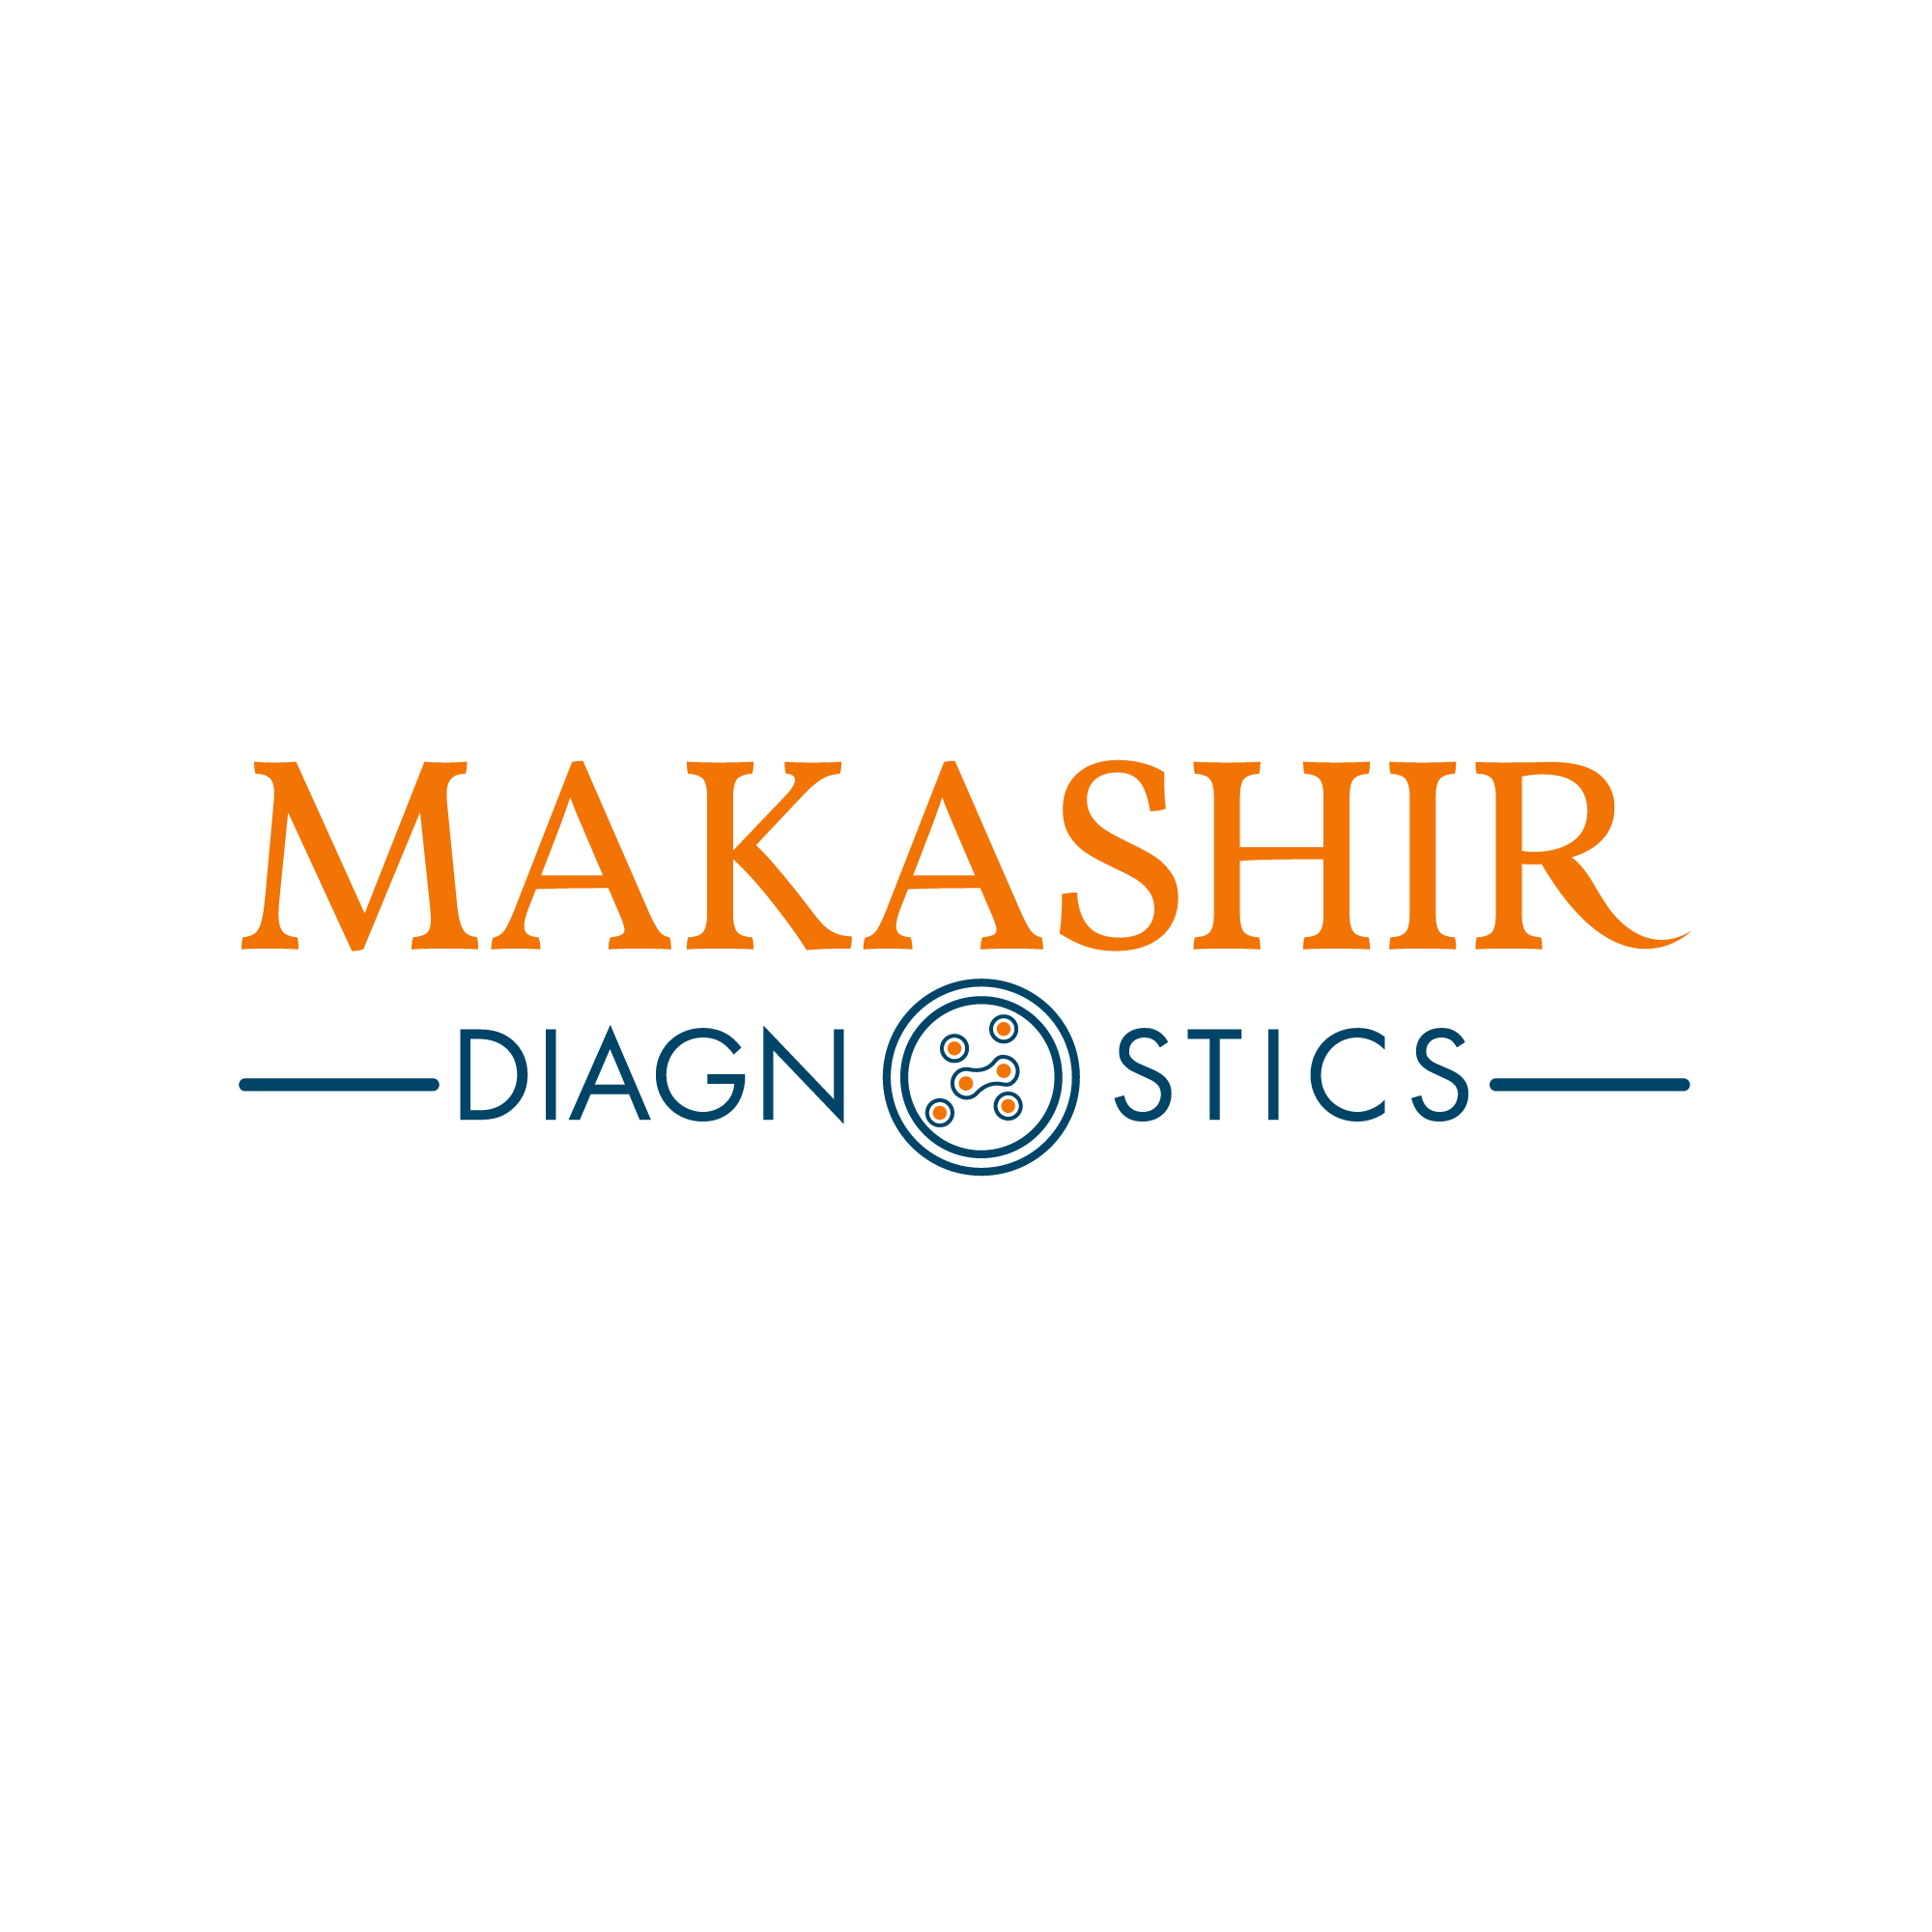 Makashir Diagnostics